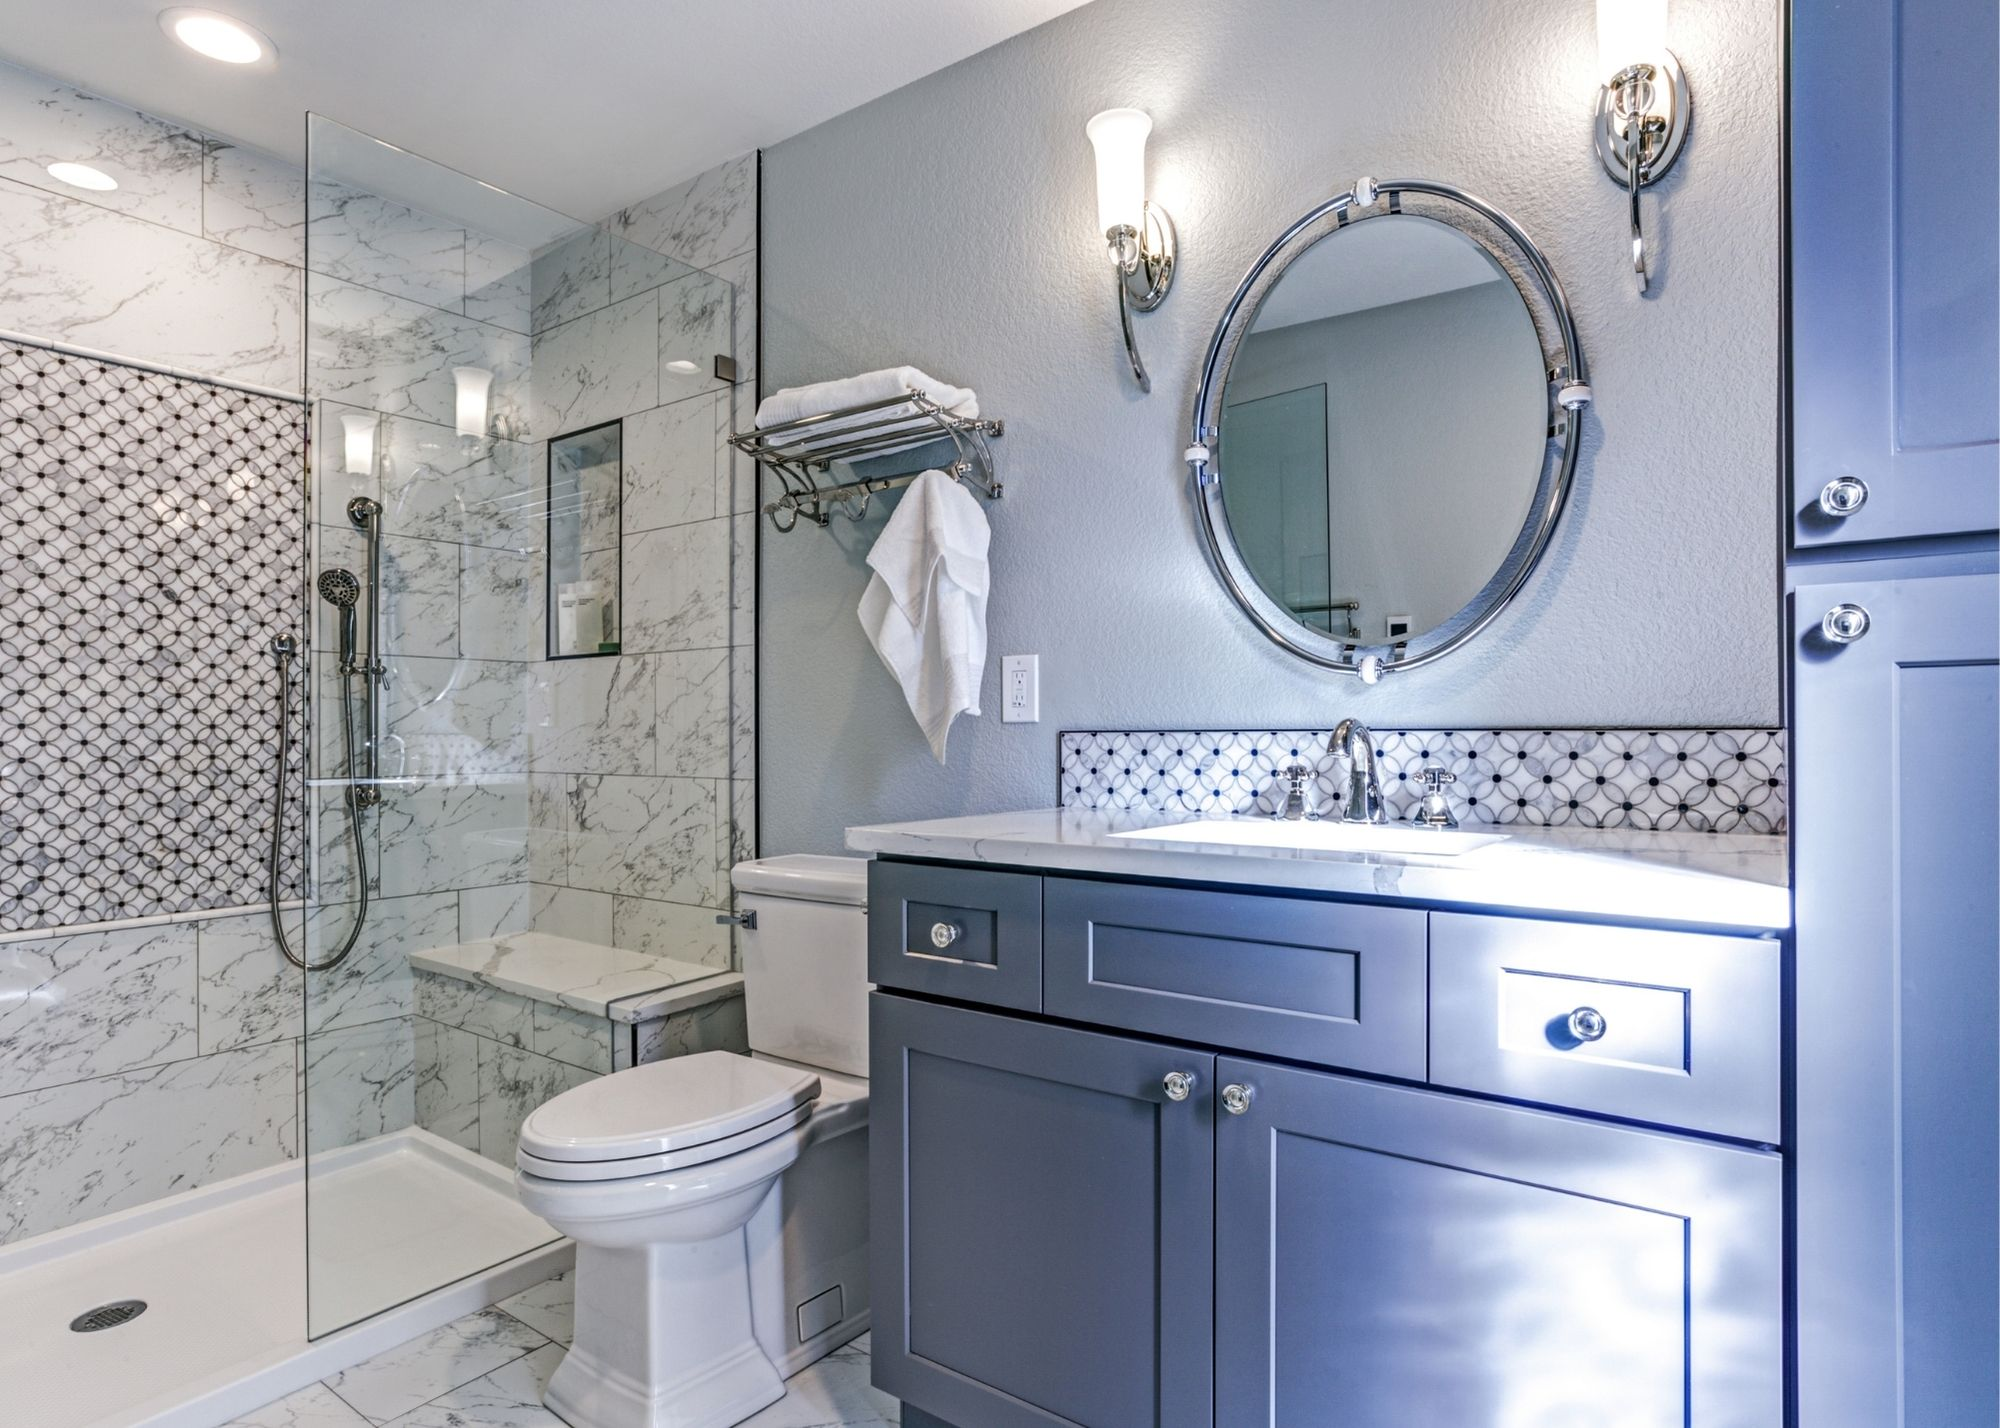 pittsburgh remodeling company